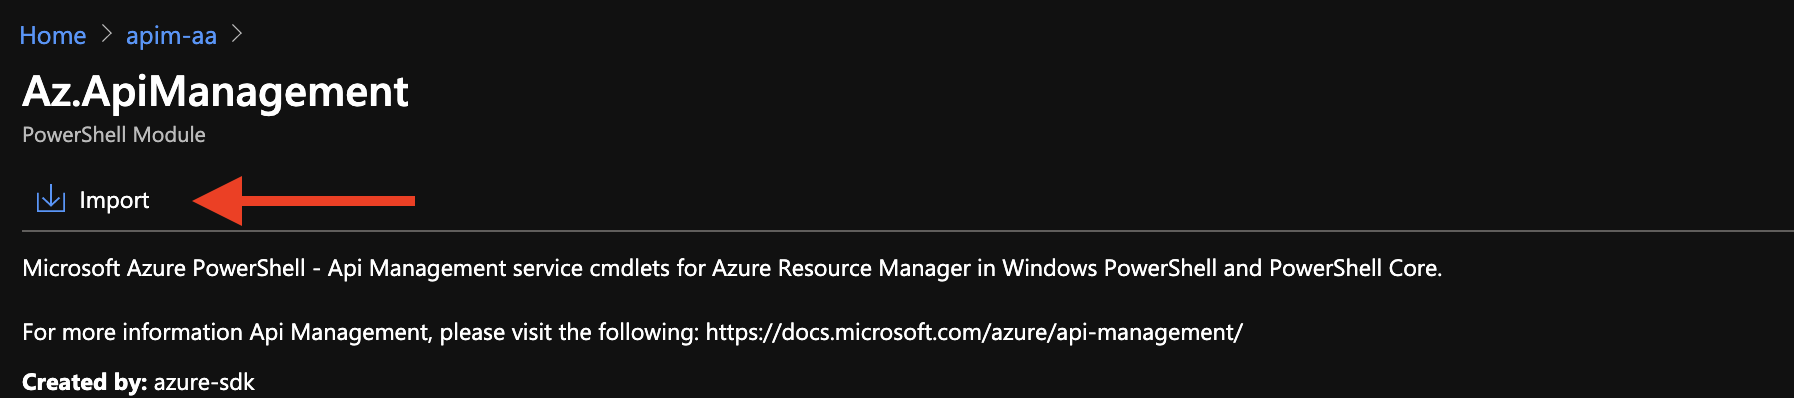 Importing Az.ApiManagement PowerShell Module